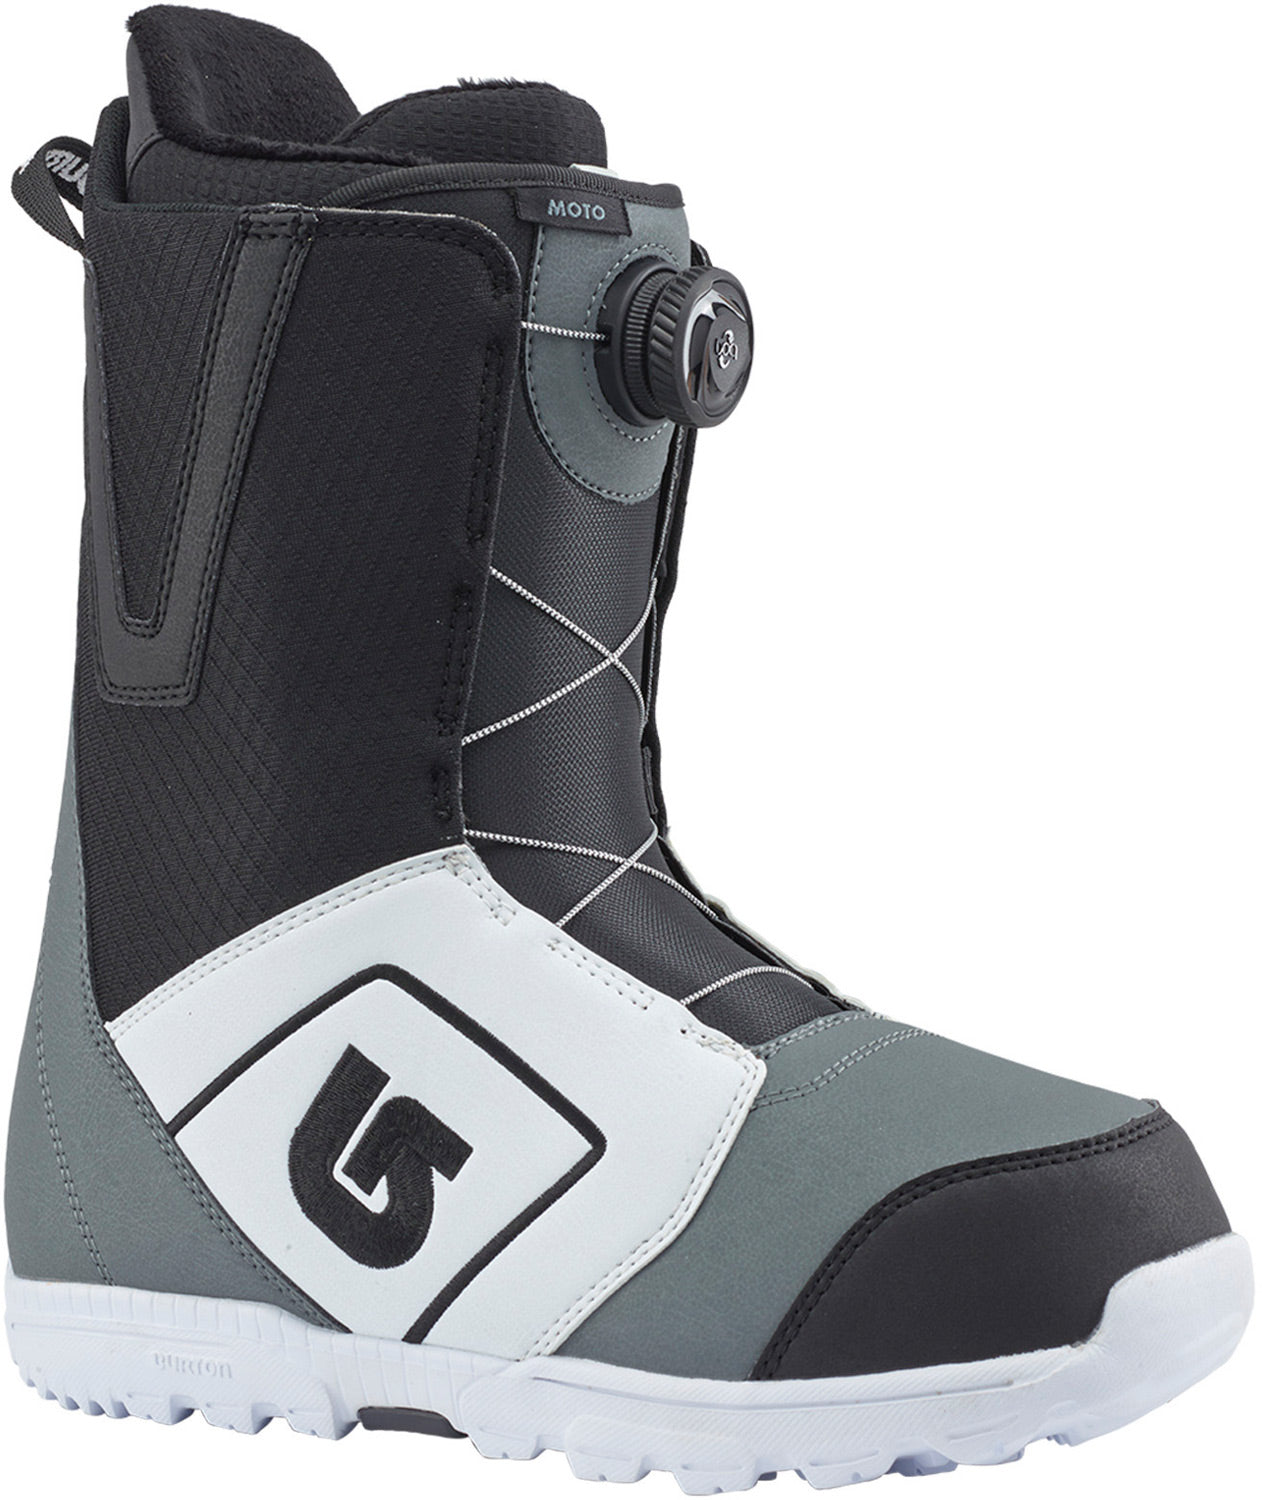 c8f6ce4fa0f 2018 Burton Moto Boa Snowboard Boot | Hickory and Tweed | New